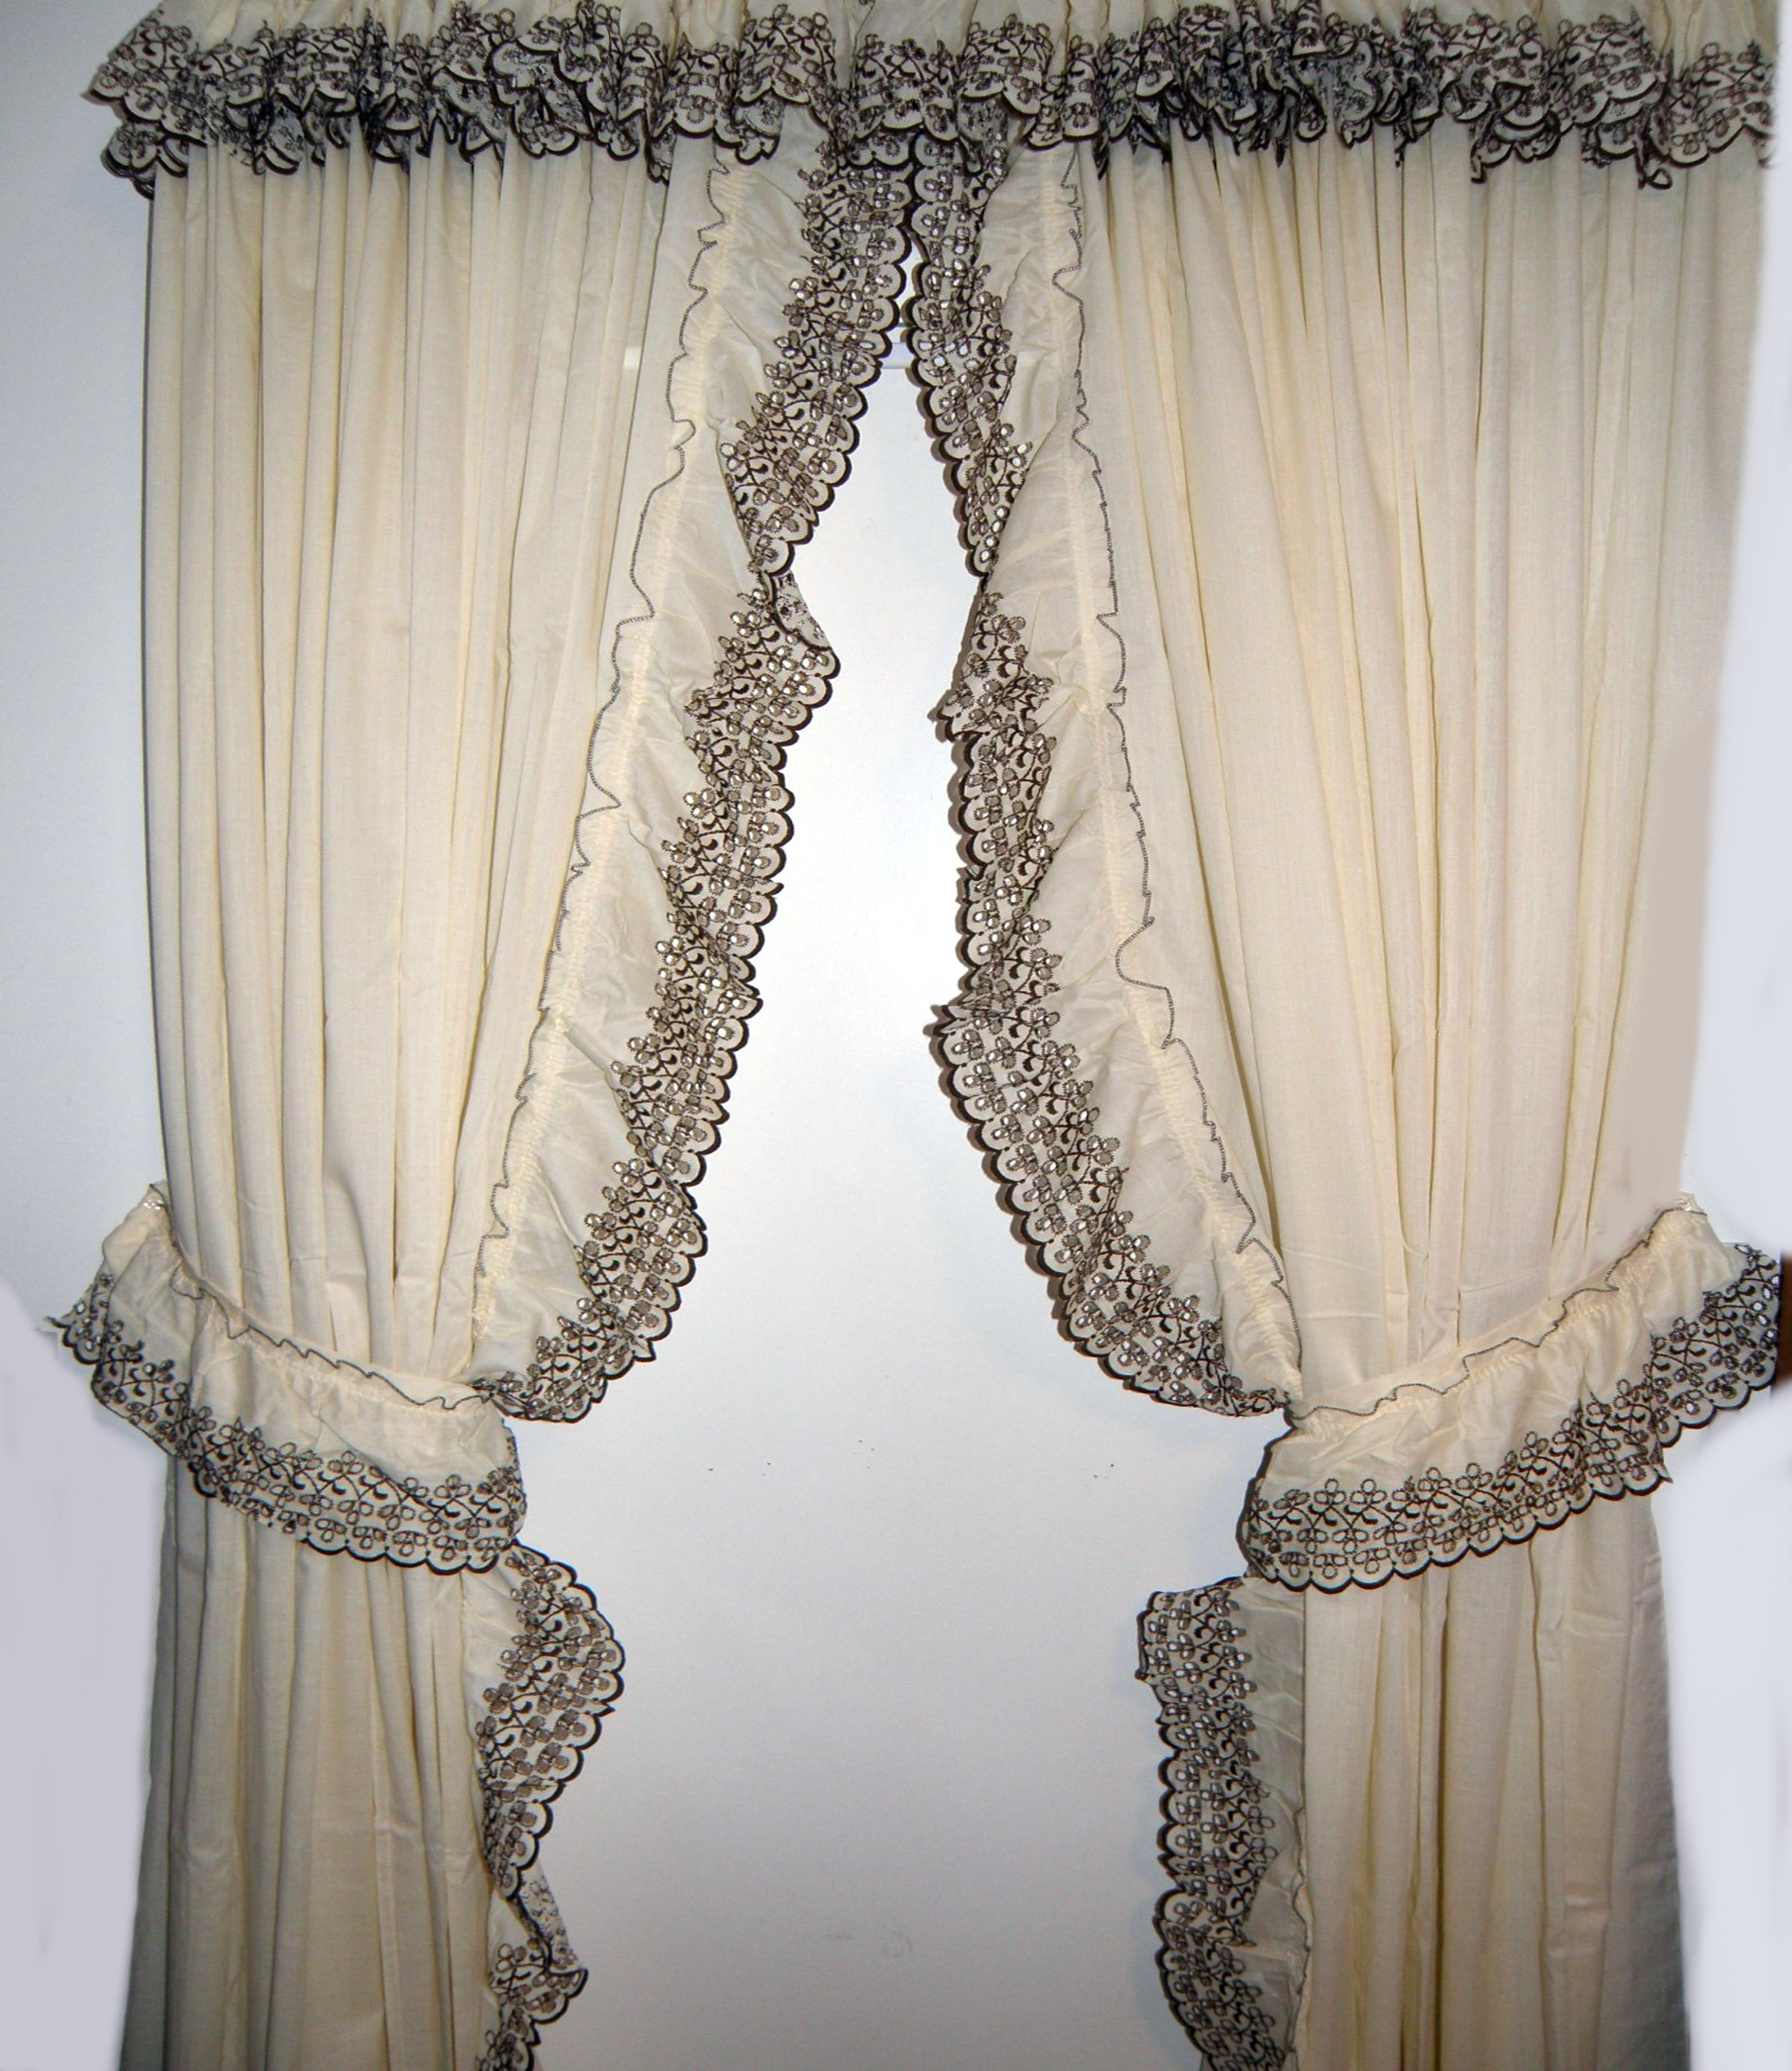 Country Style Look With Ruffled Curtains